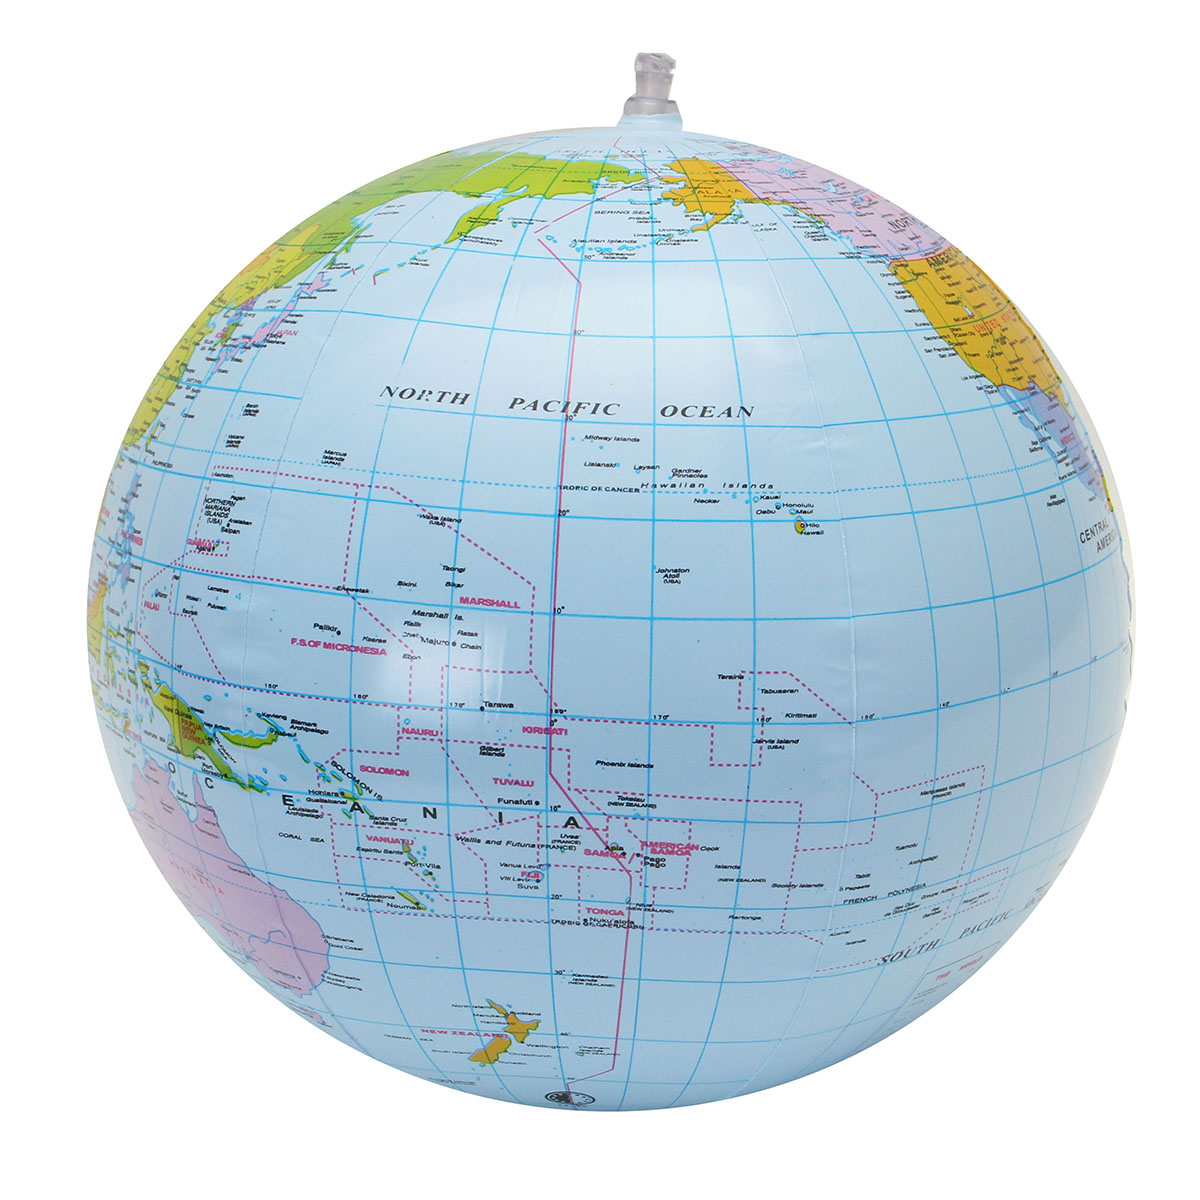 Actual Globe Map.New 30cm Inflatable Globe World Earth Ocean Map Ball Geography